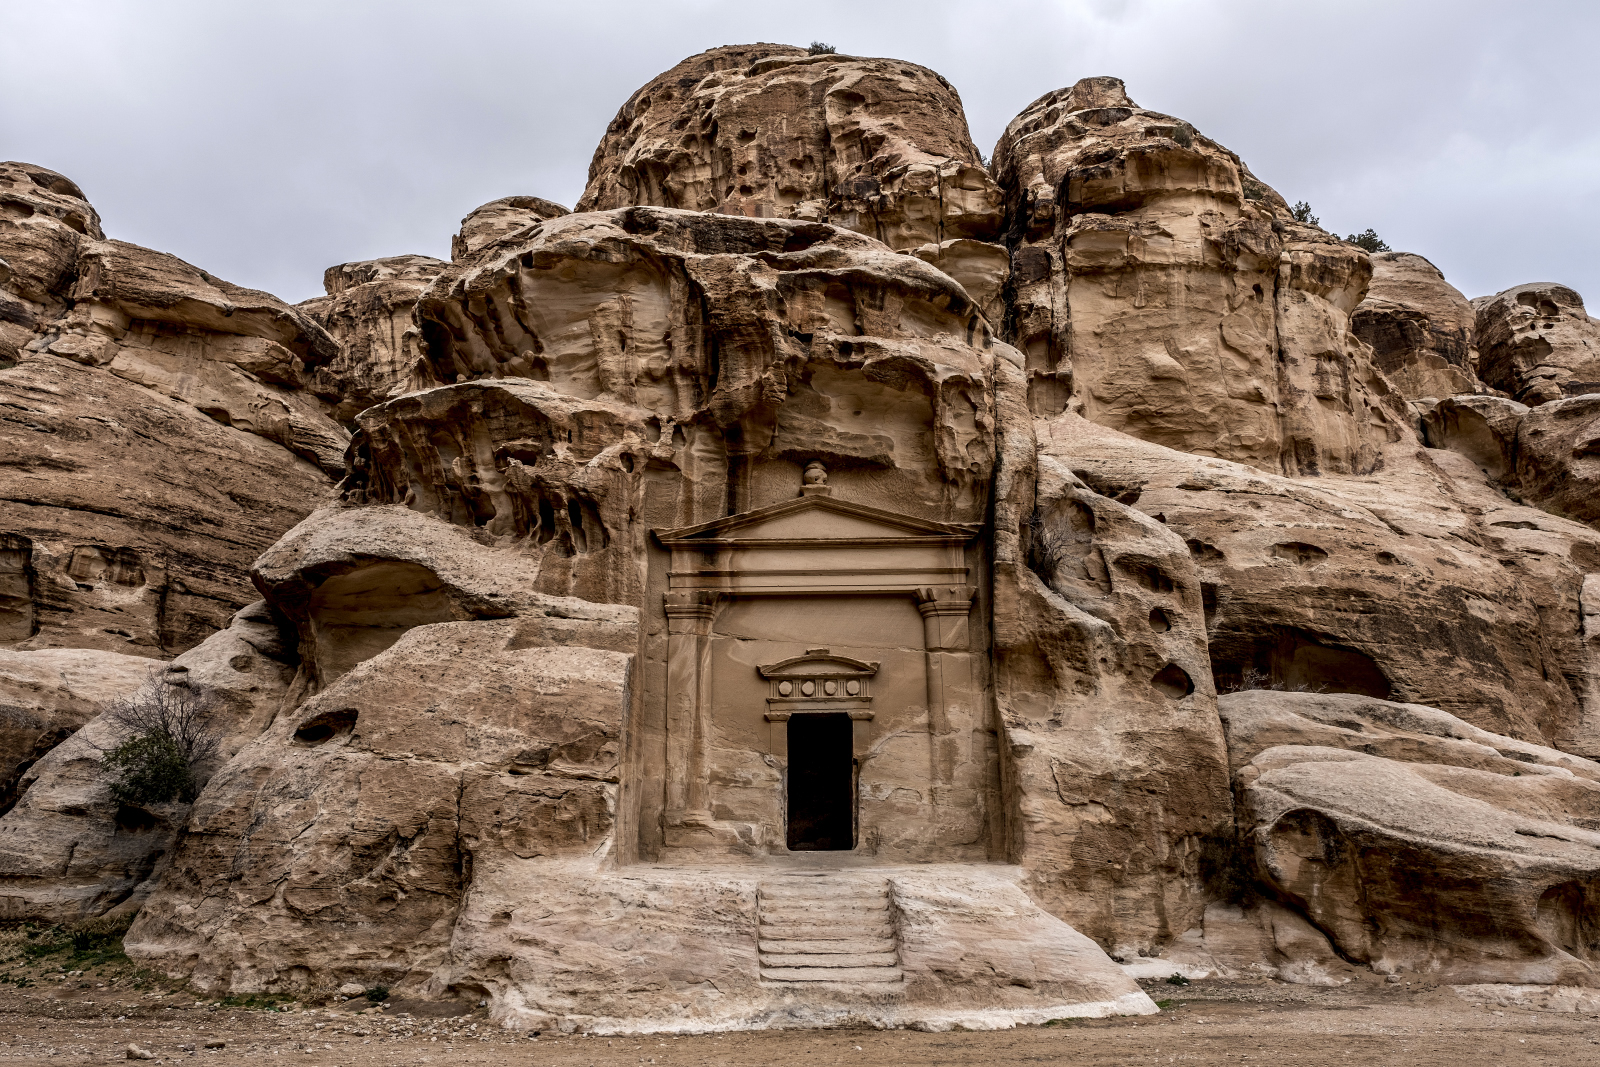 Little Petra - an off-the-beaten-path site of the nabatean people